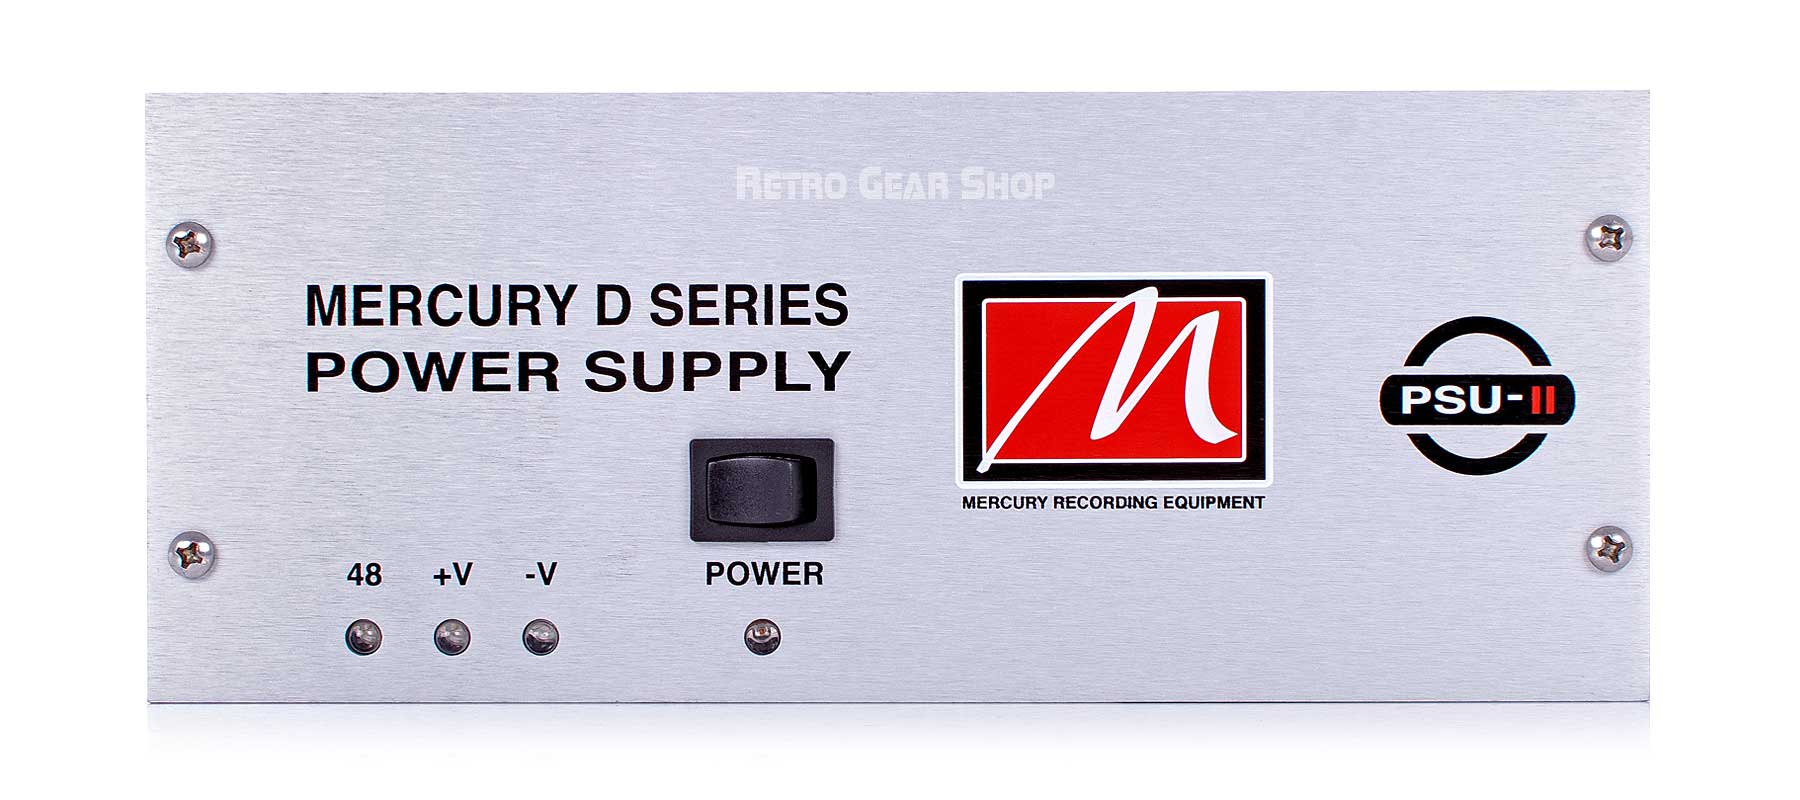 Mercury Recording Equipment 5.2A PSU-II Power Supply Front